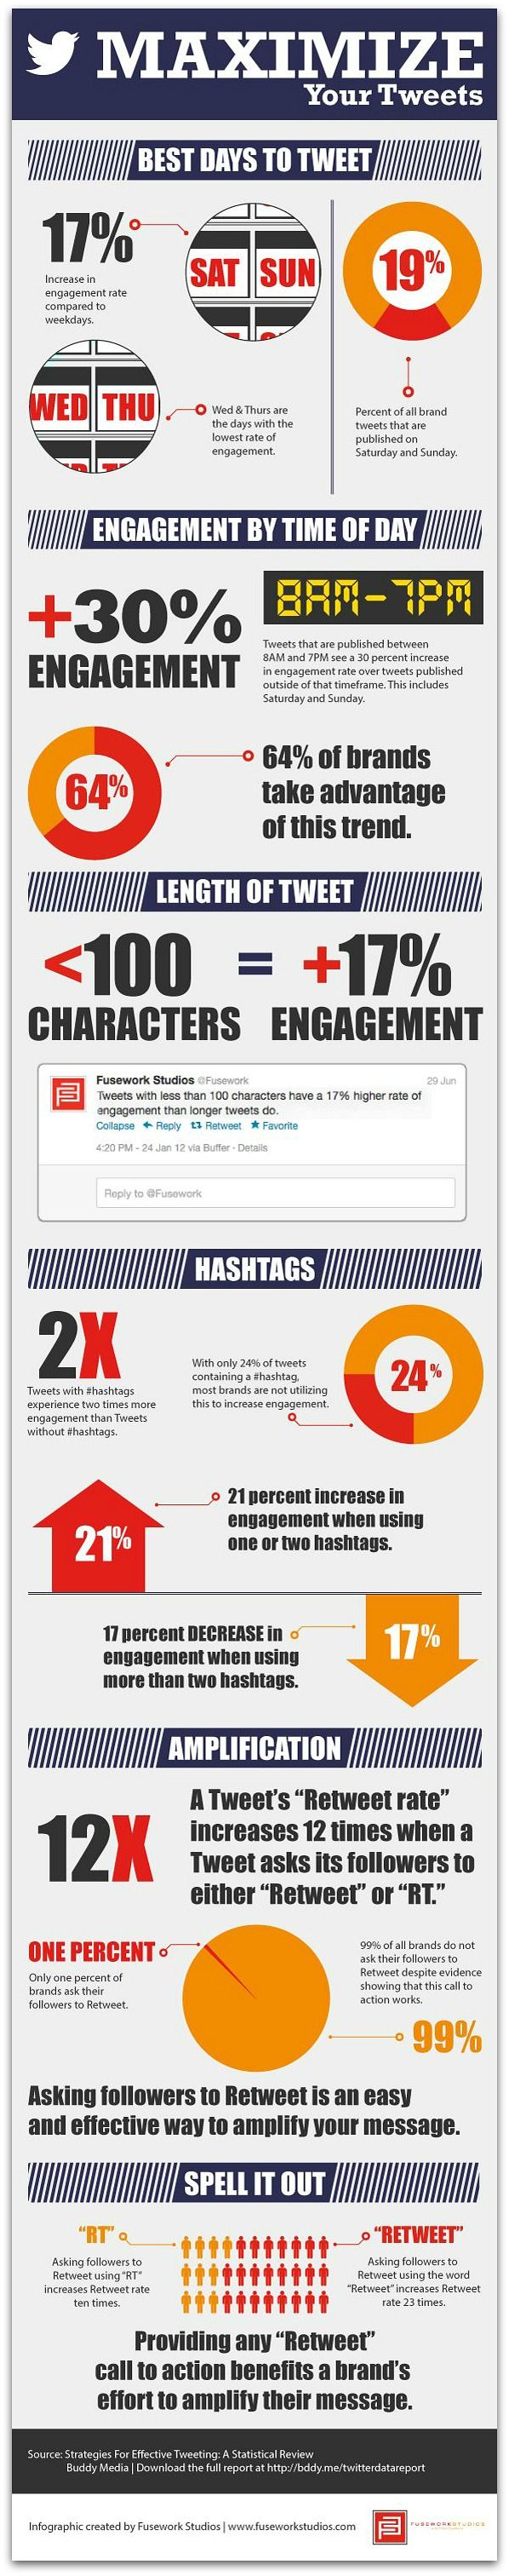 How to jumpstart engagement on